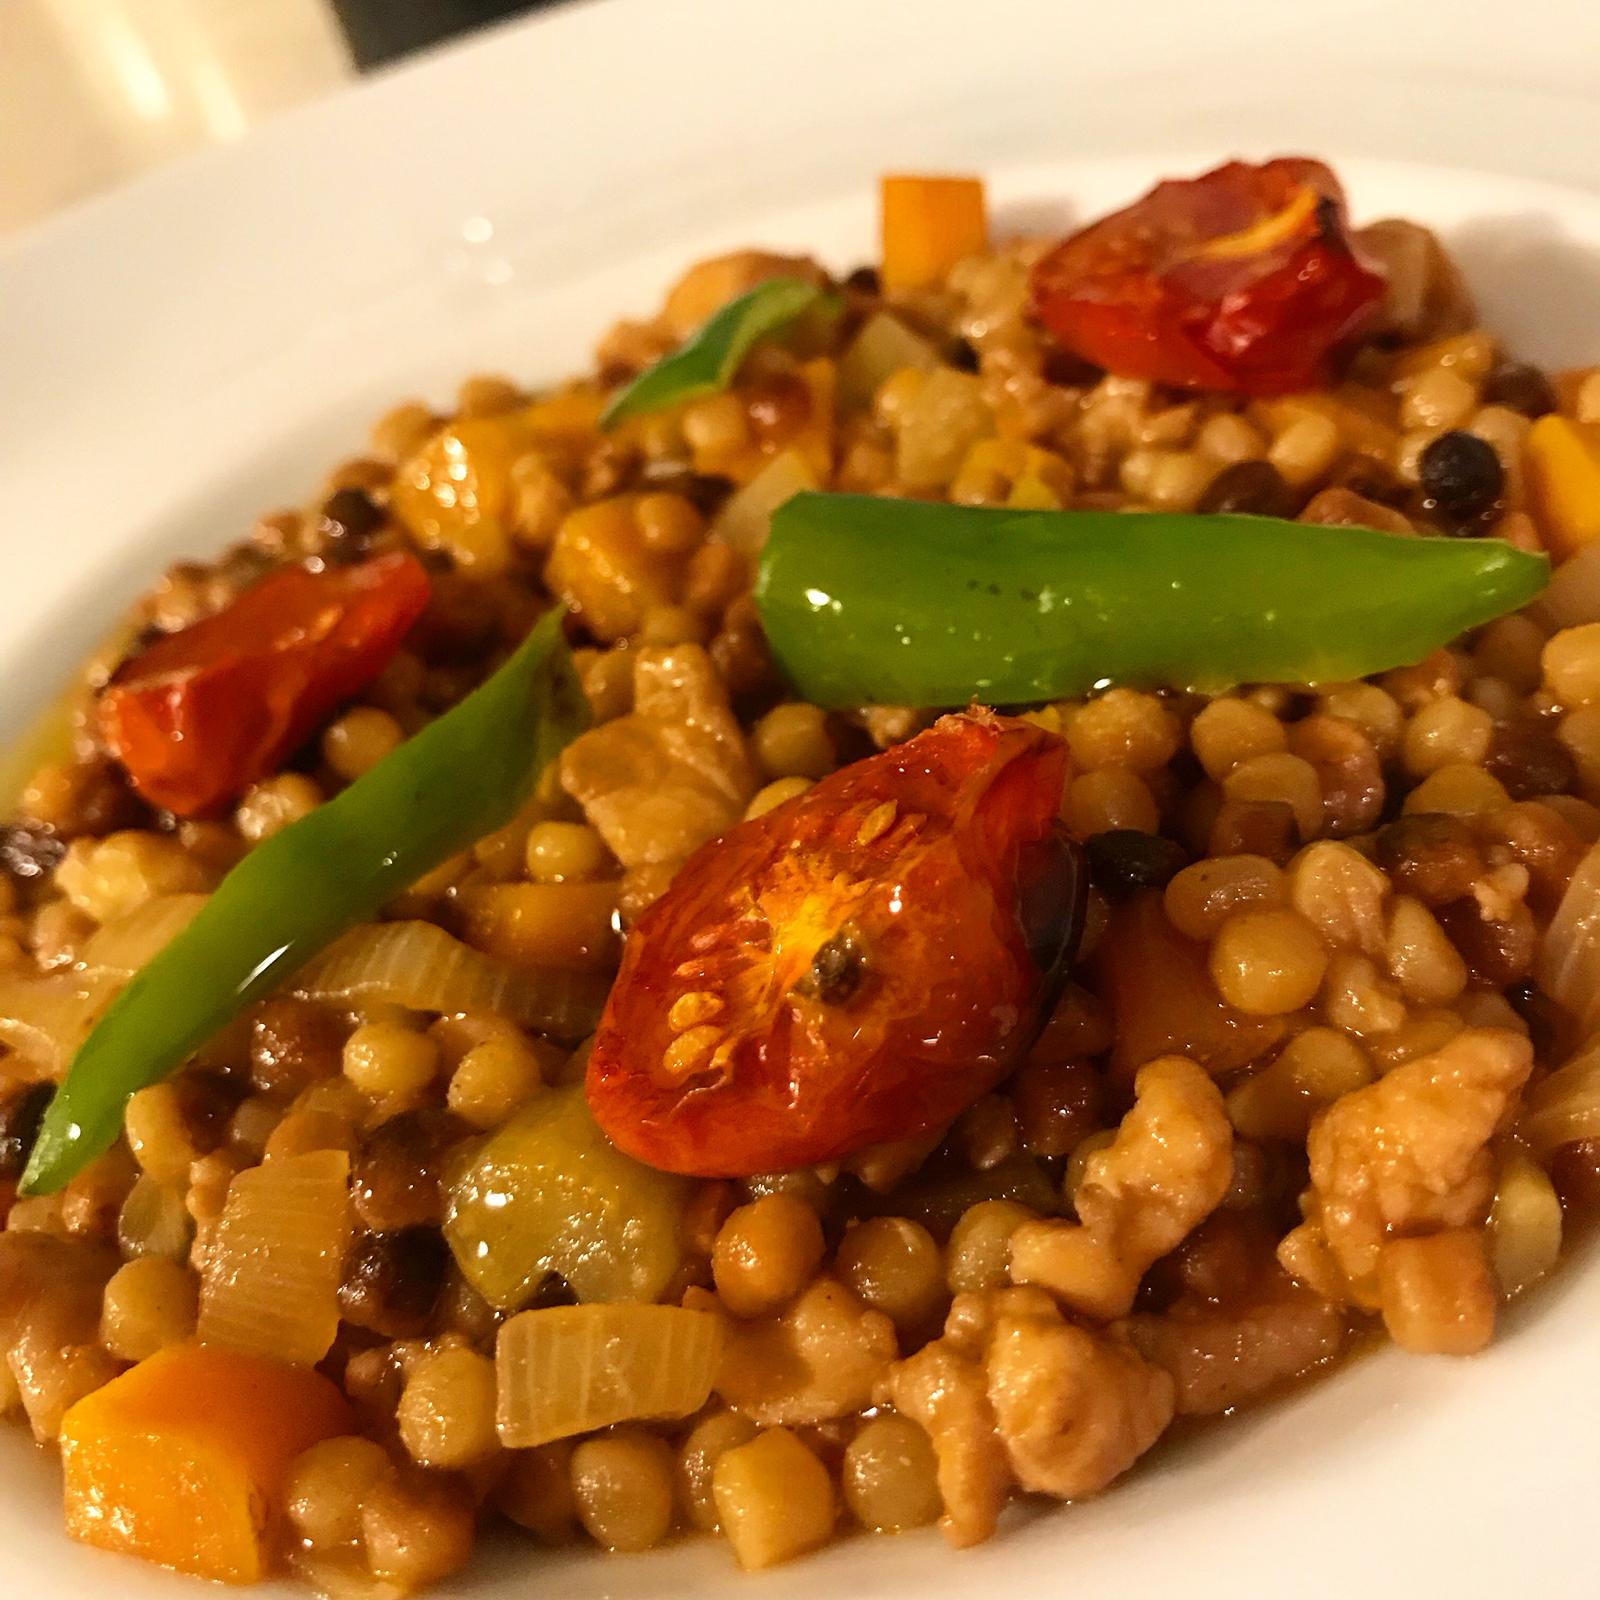 fregula integrale con ragu di polletto marinato in salsa teriyaki